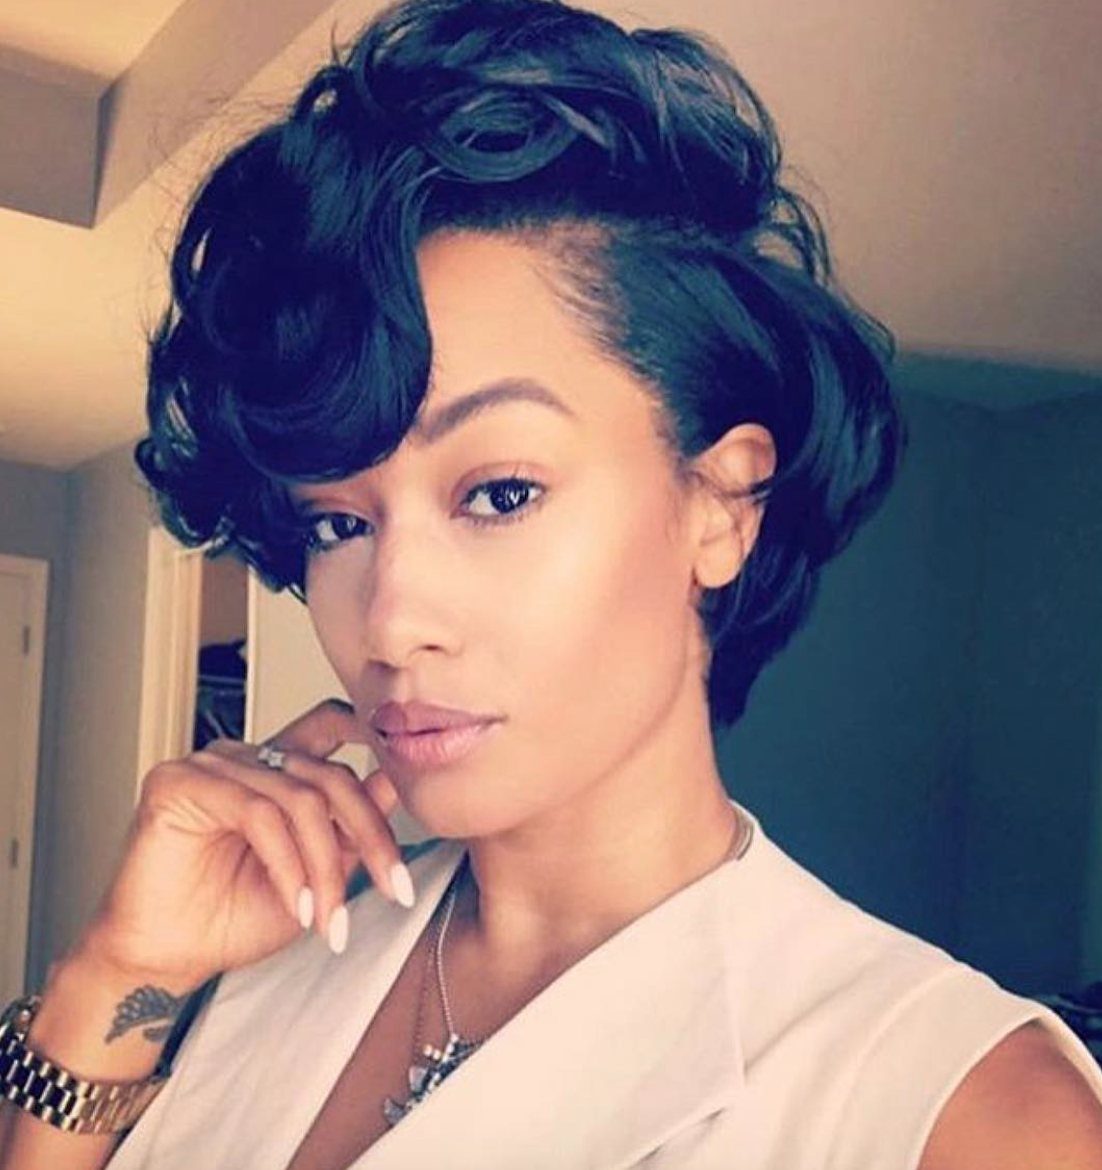 Short Hairstyles Black Hair Adorable Beautiful Luvcrystalrenee  Httpsblackhairinformation